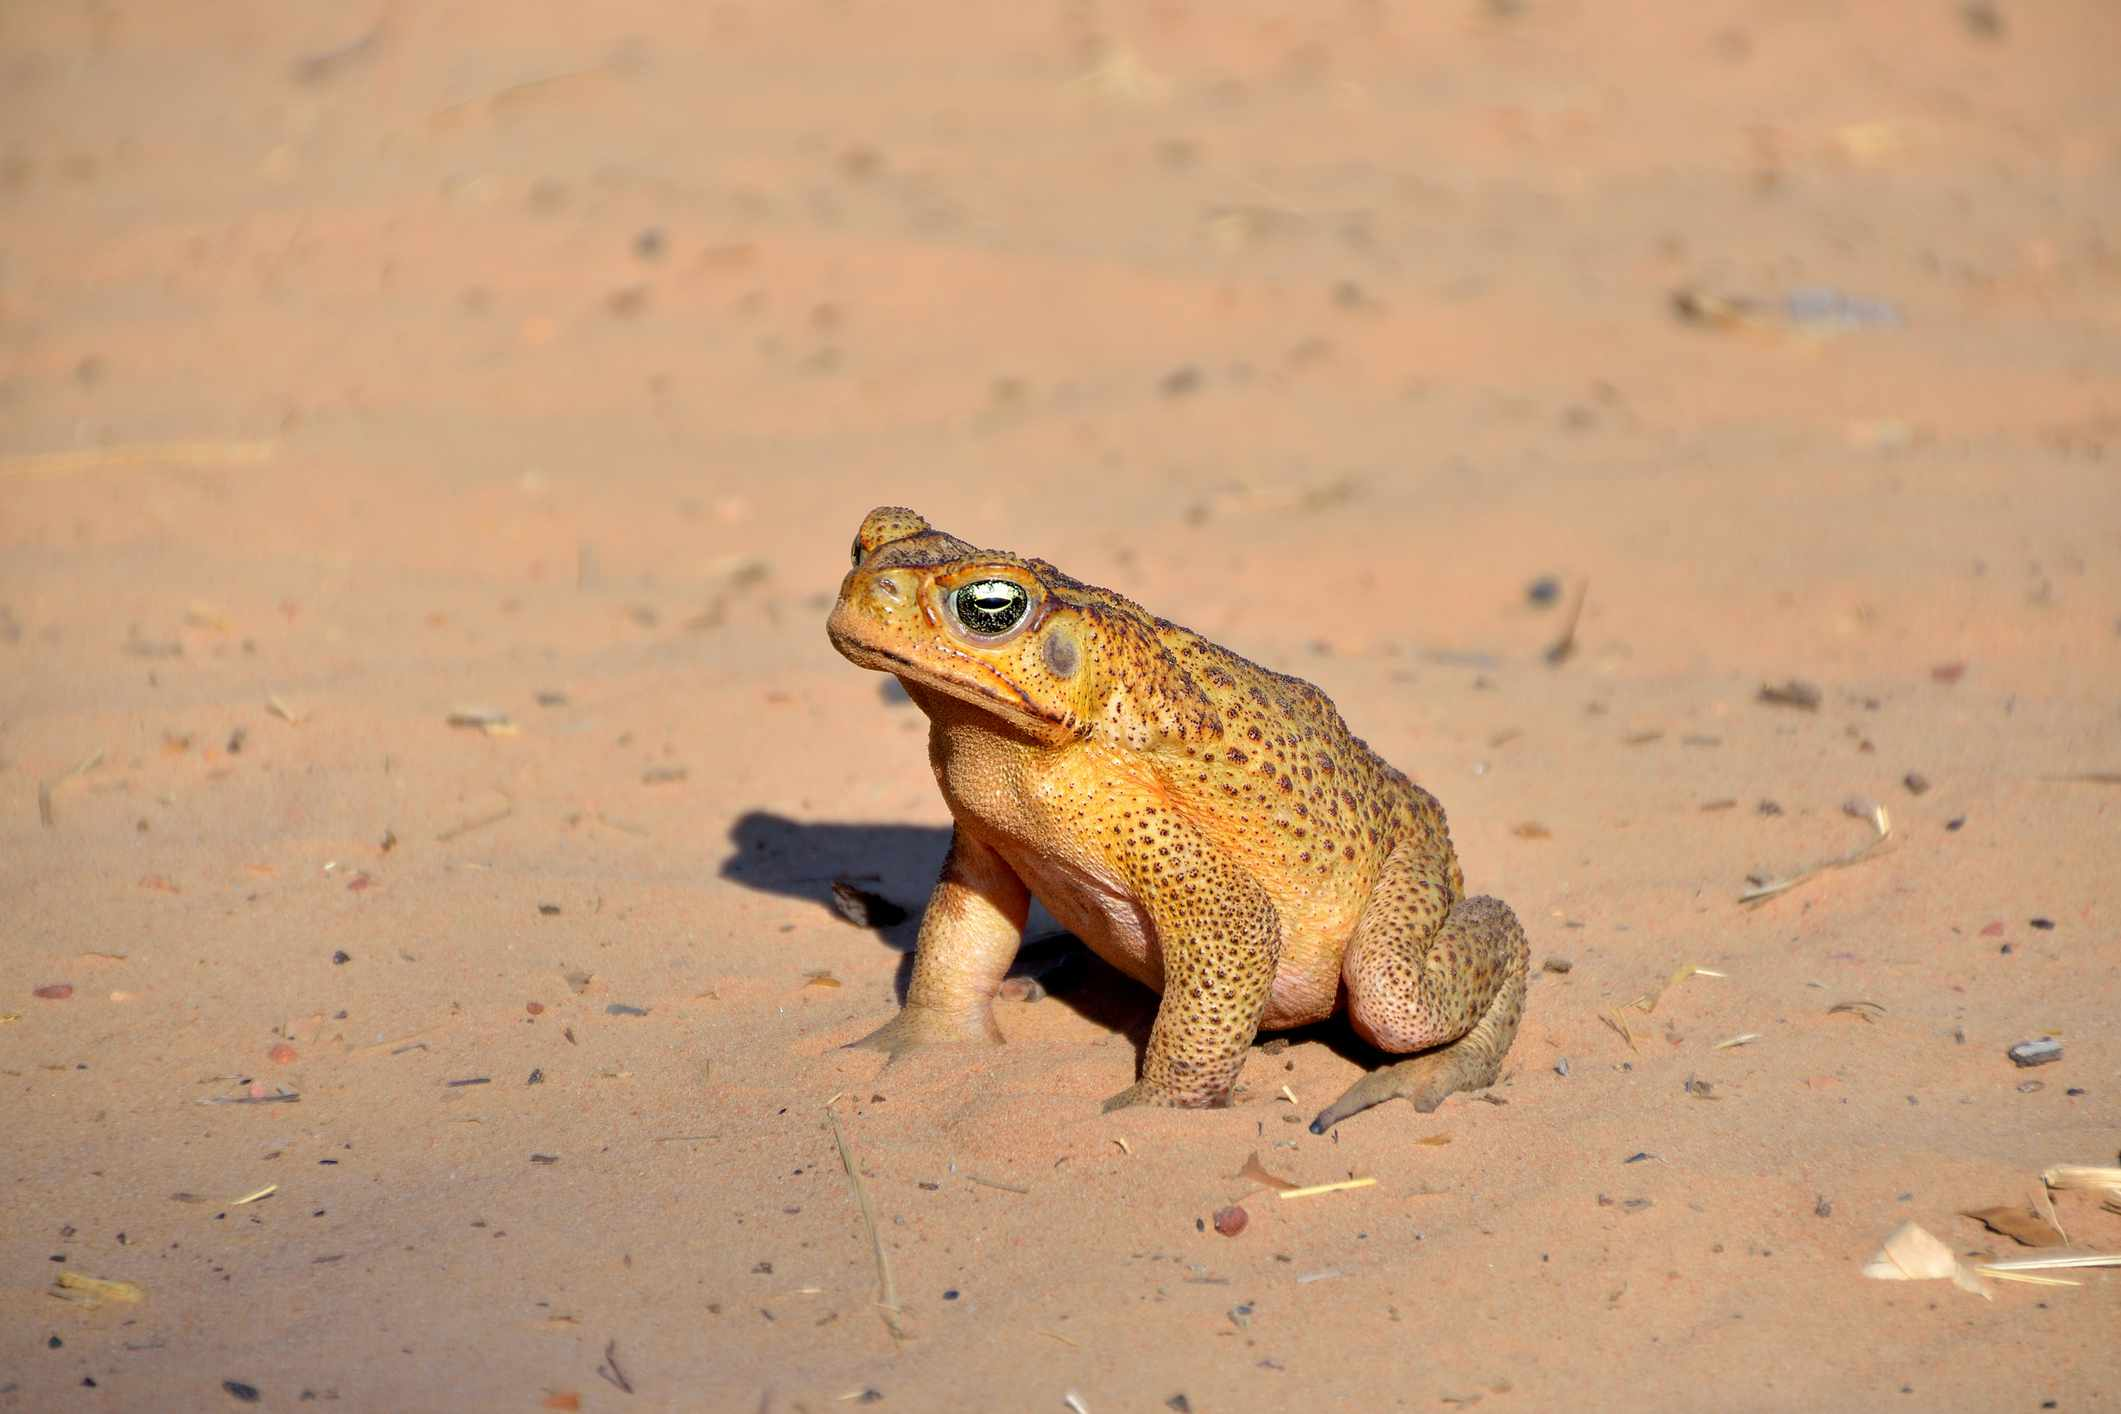 A large yellow toad with brown spots standing in the sand